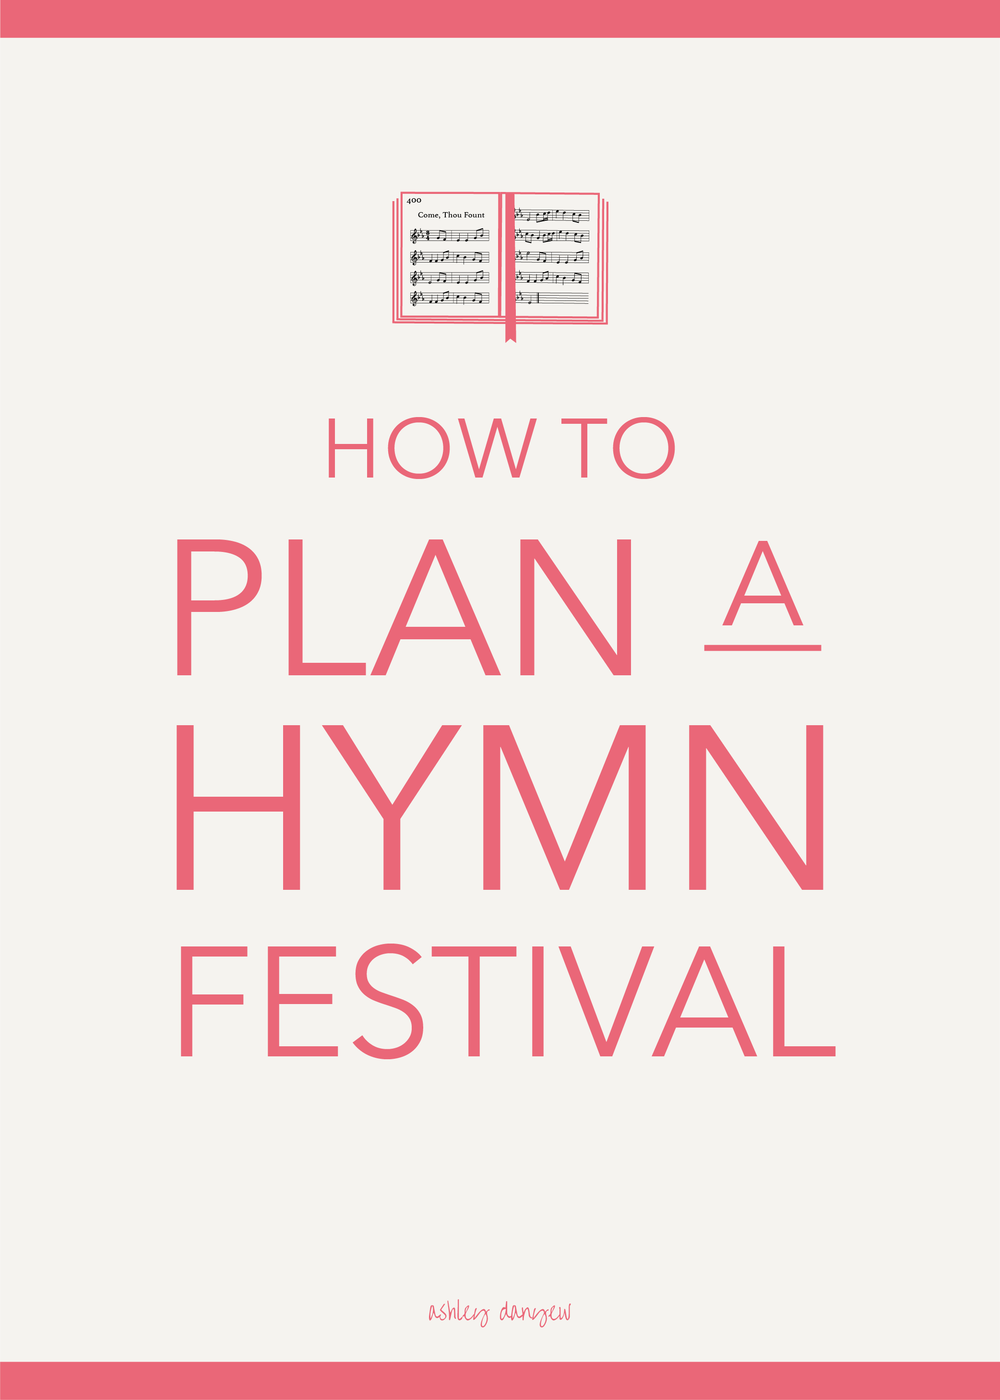 How to Plan a Hymn Festival-03.png